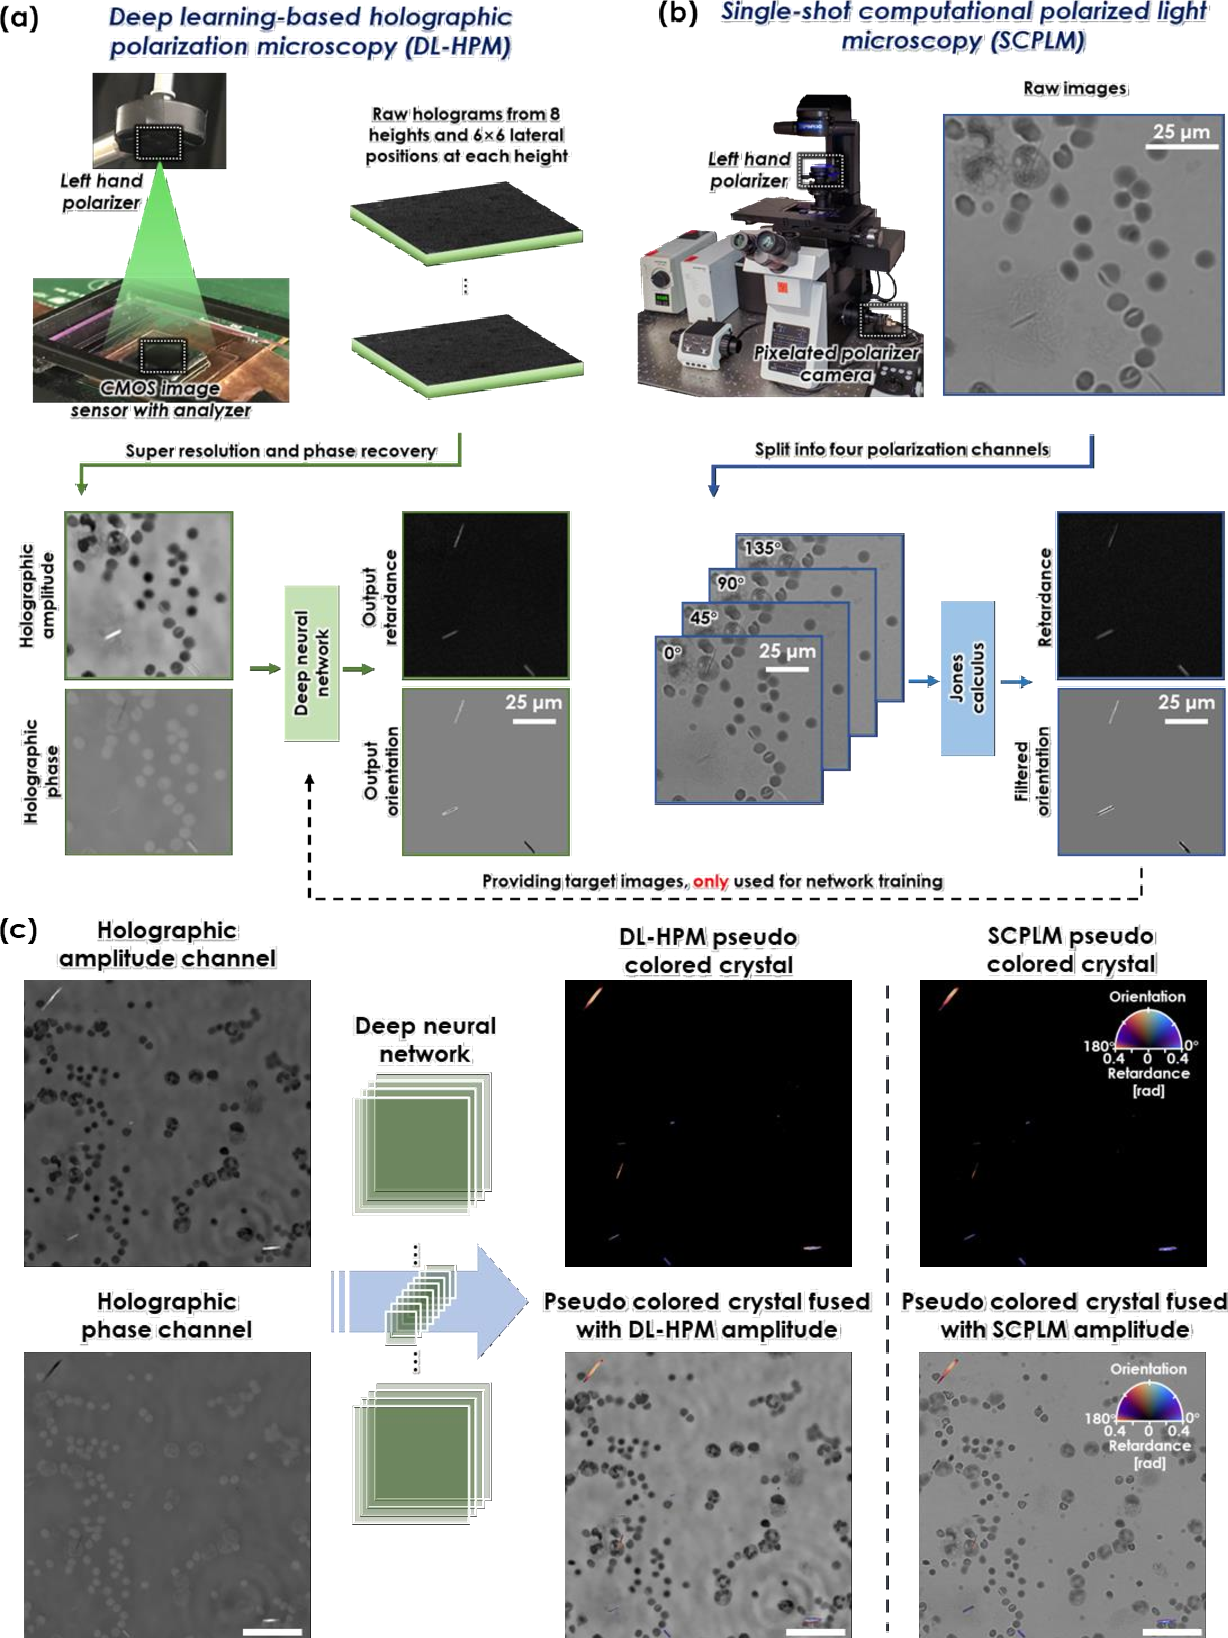 Figure 1 for Deep learning-based holographic polarization microscopy